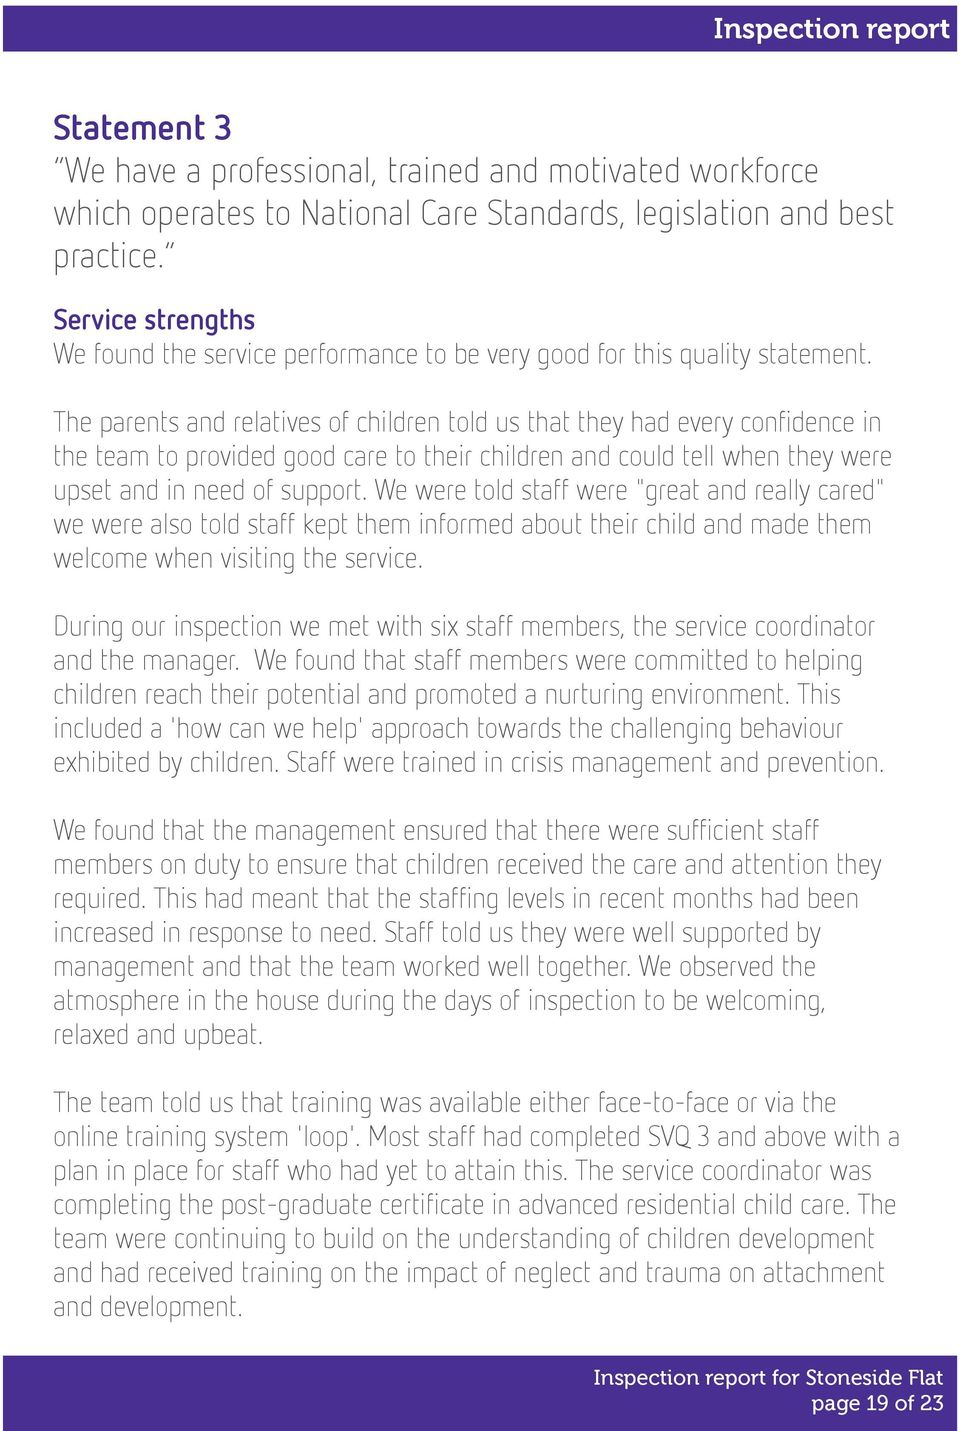 The parents and relatives of children told us that they had every confidence in the team to provided good care to their children and could tell when they were upset and in need of support.